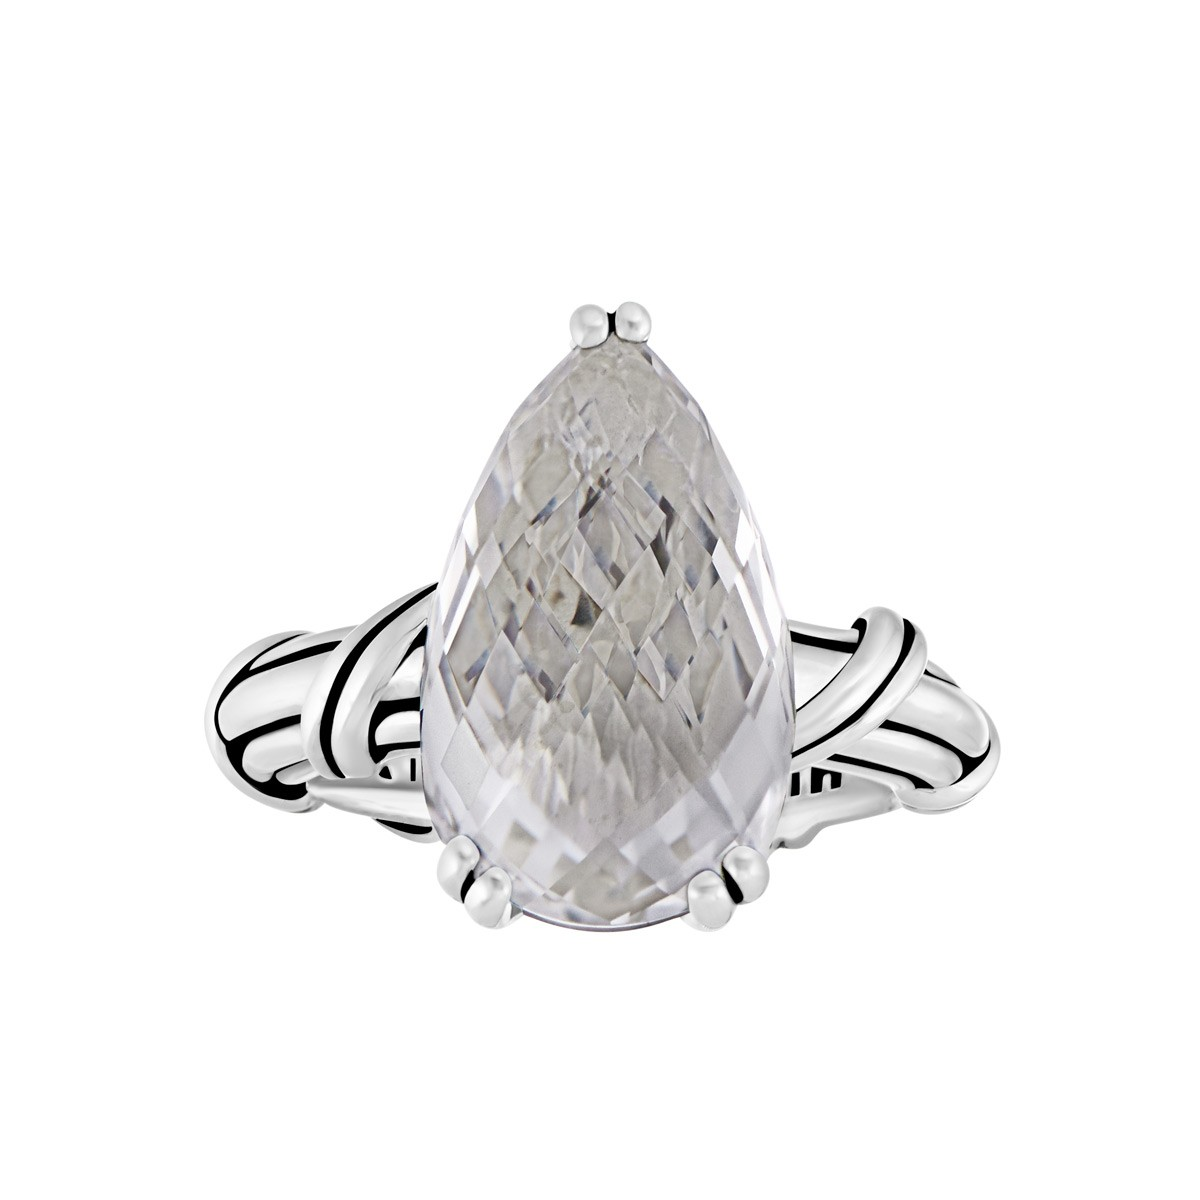 Fantasies Rock Crystal Pear Cocktail Ring in sterling silver